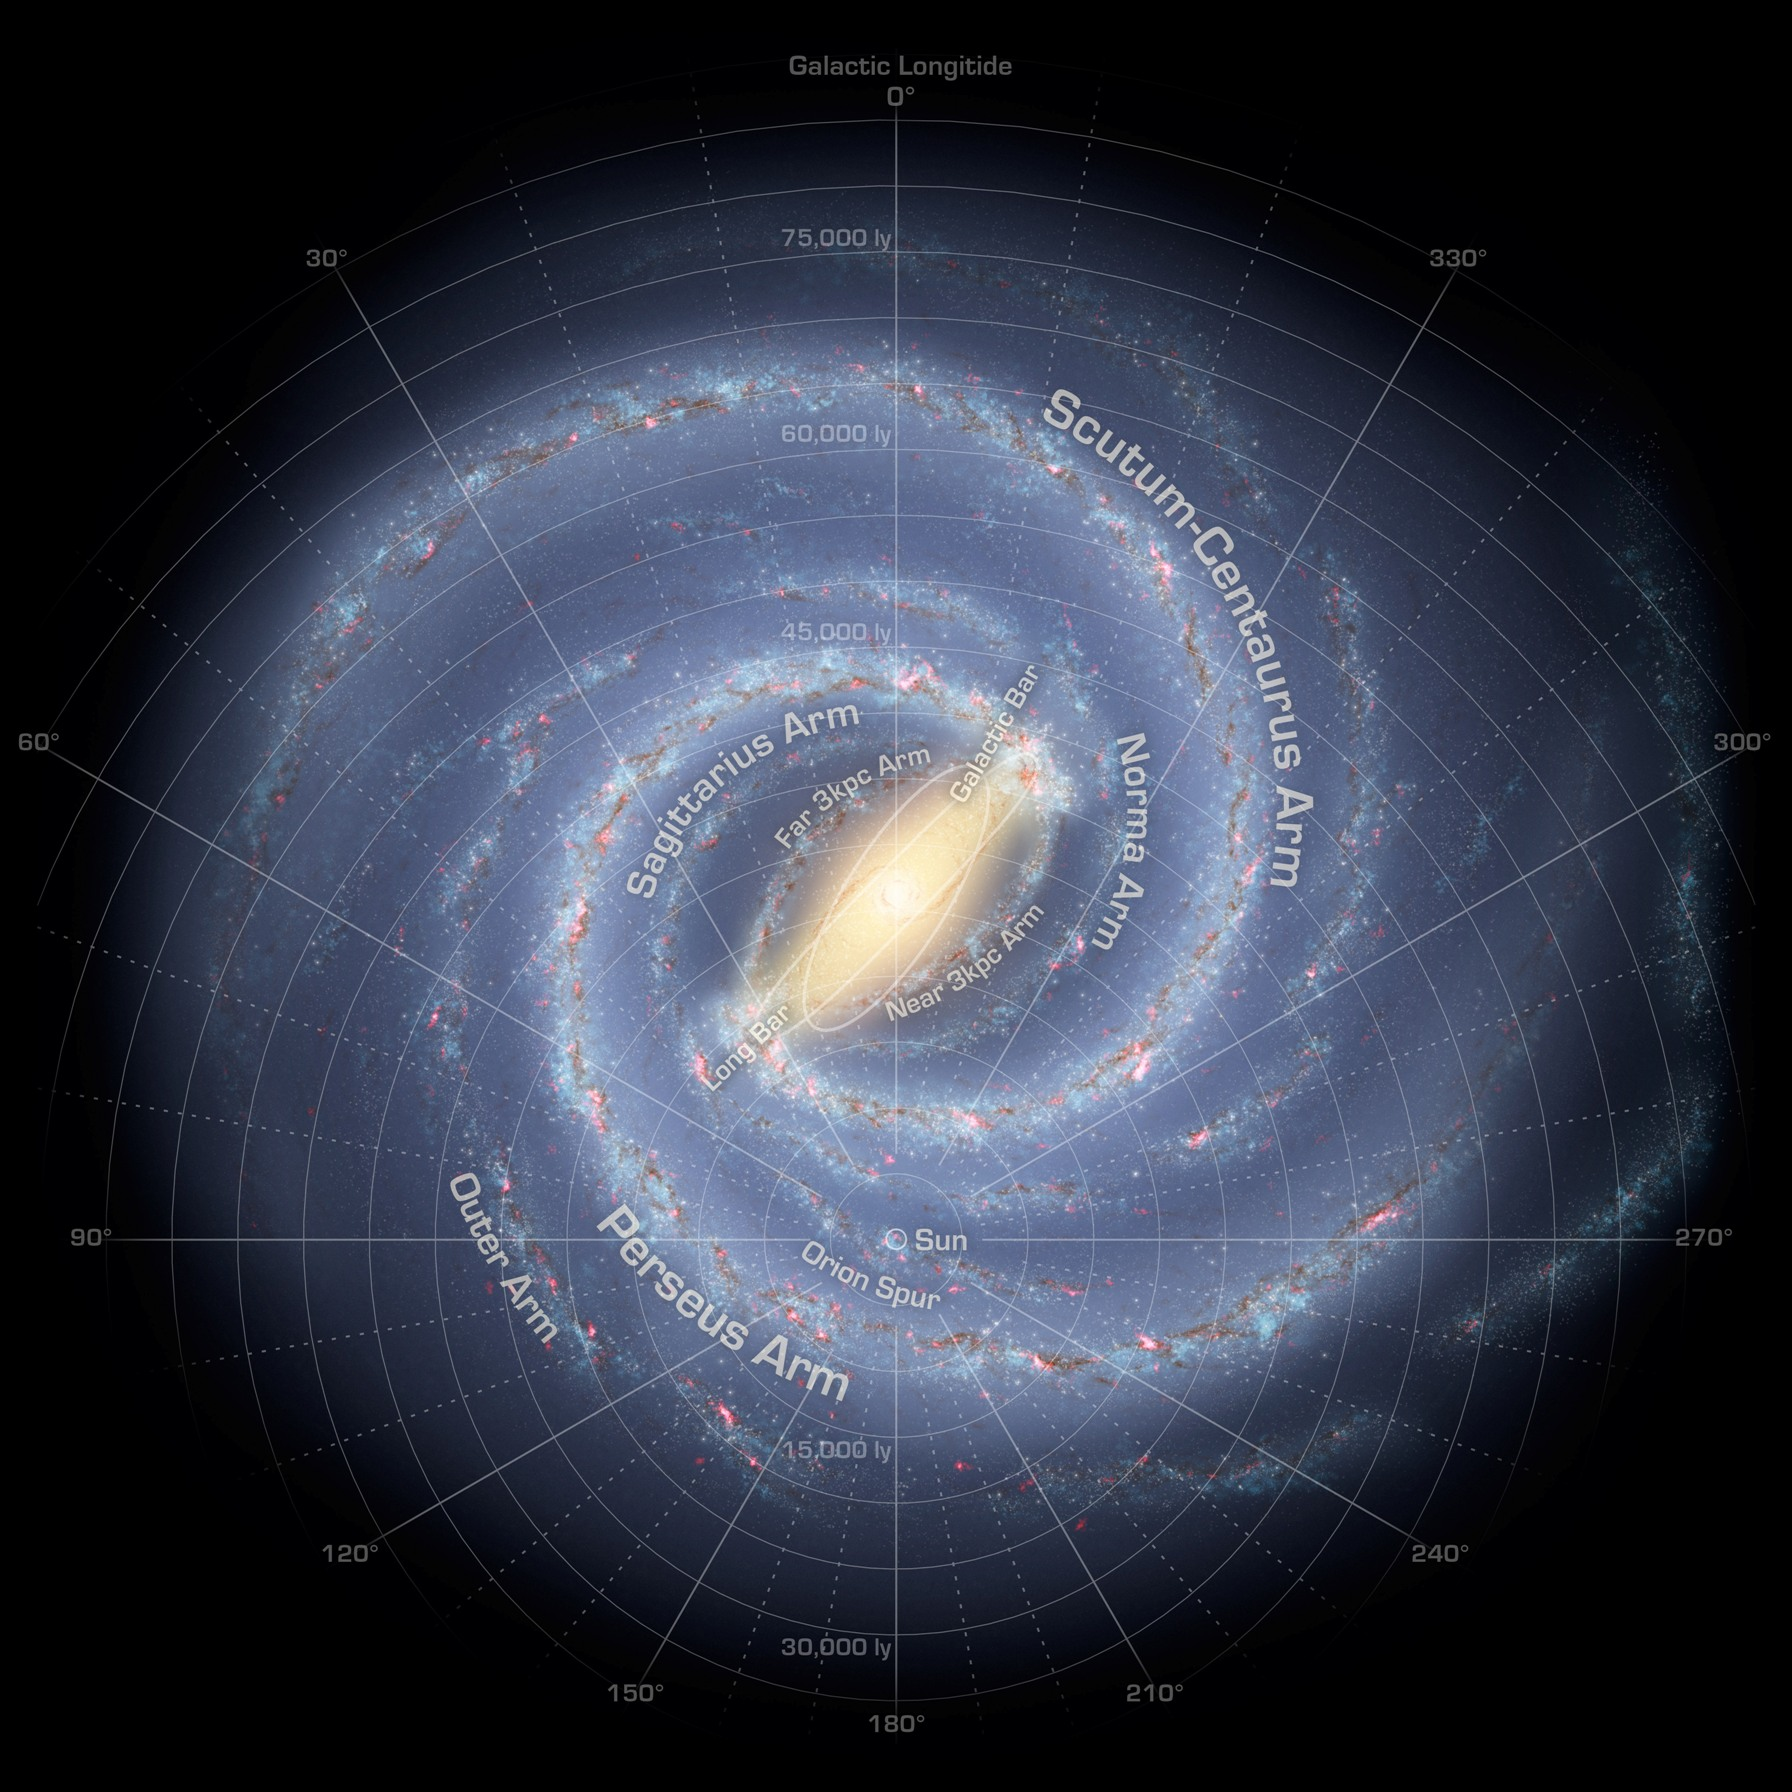 The Milky Way galaxy's spiral arms